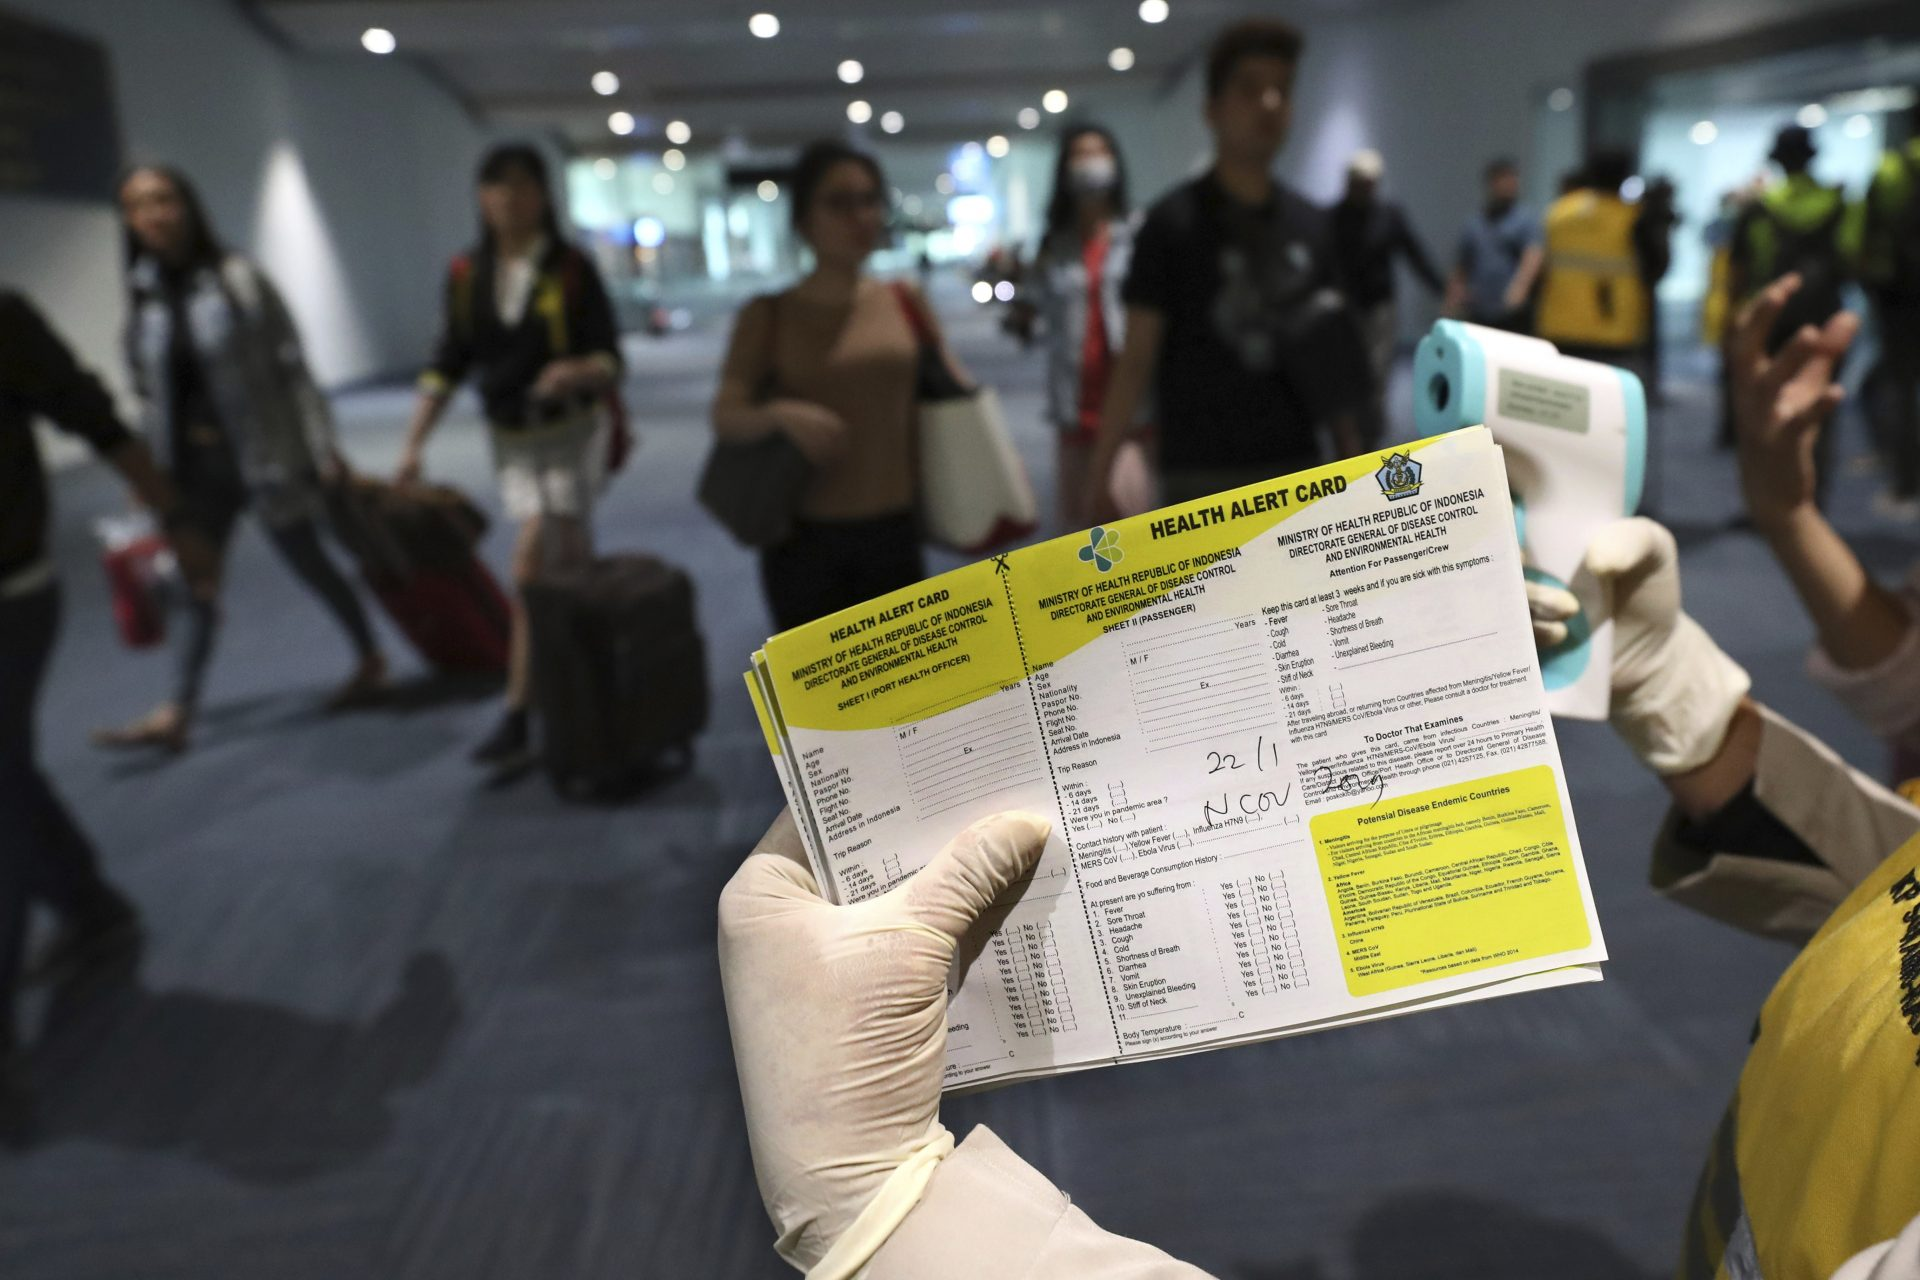 A health official holds a health alert card at the Soekarno-Hatta International Airport in Tangerang, Indonesia, Wednesday, Jan. 22, 2020. Indonesia is screening travelers from overseas for a new type of coronavirus as fears spread about a mysterious infectious disease after its first death reported in China.